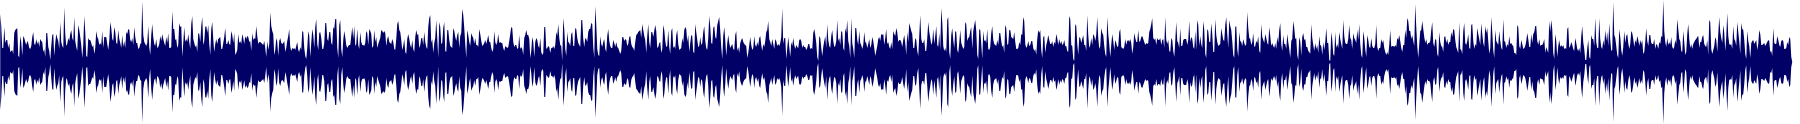 waveform of track #75185